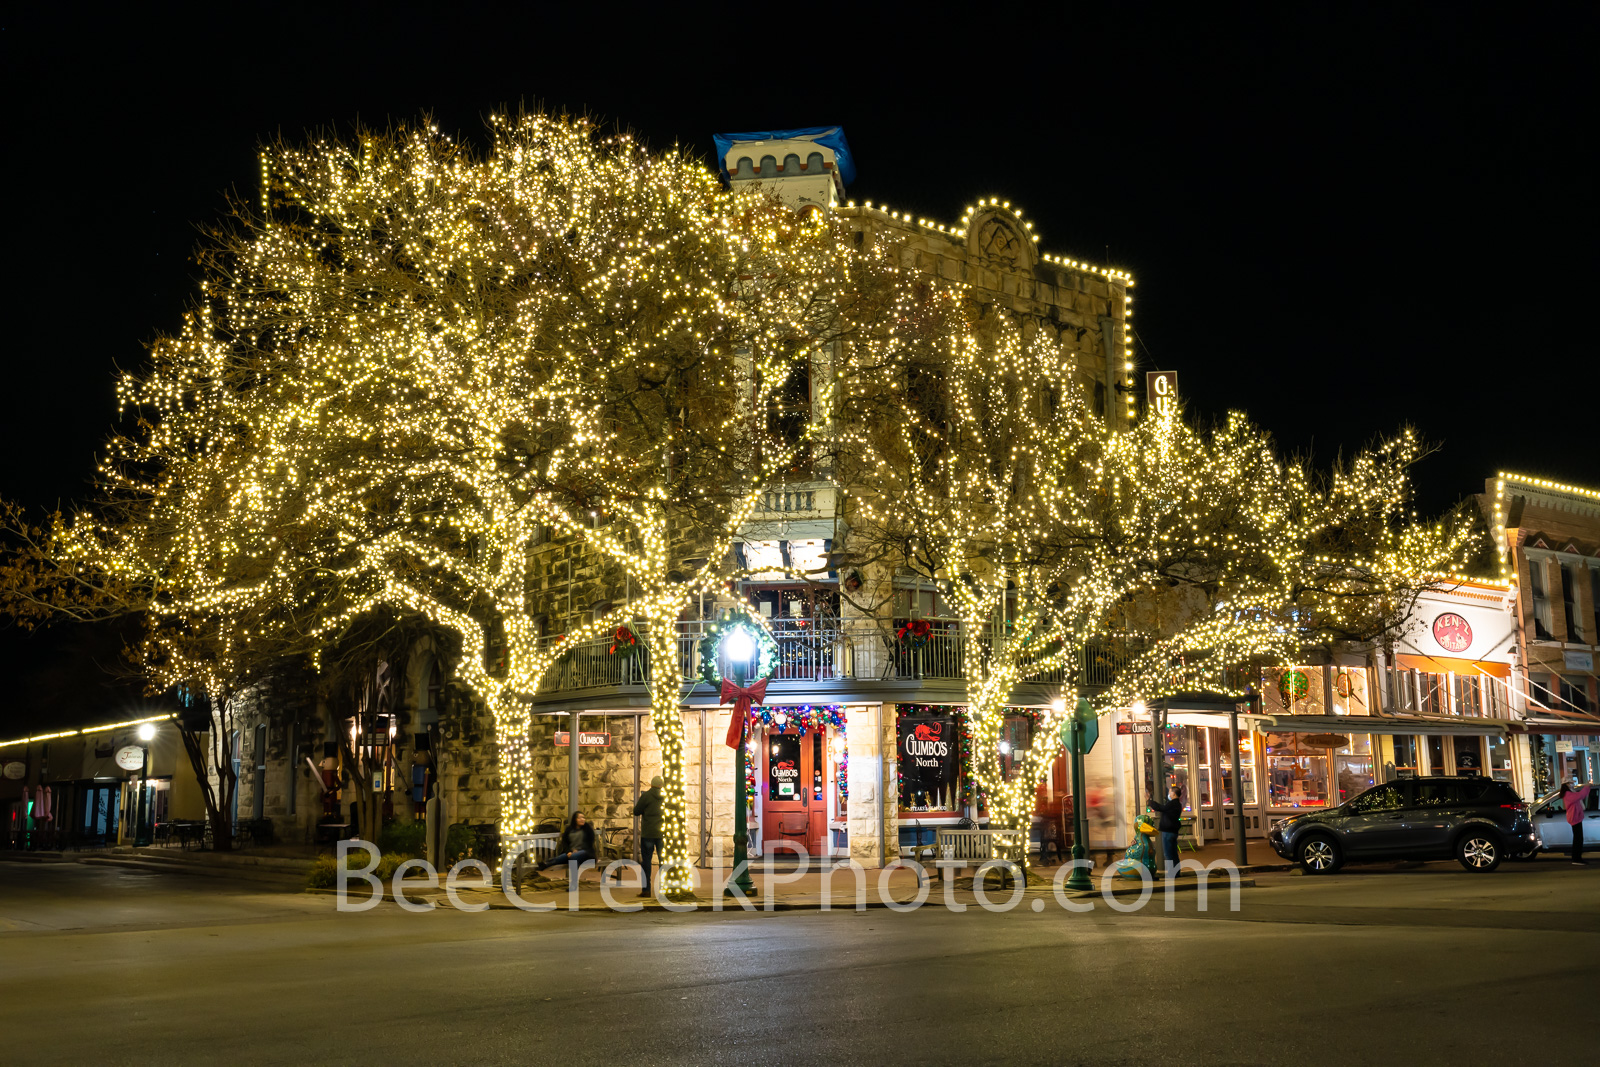 georgetown texas, texas christmas, holiday lights, christmas lights, street corner, town square, downtown georgetown, festival, christmas season, holiday decorations, courthouse, williamson county,  , photo